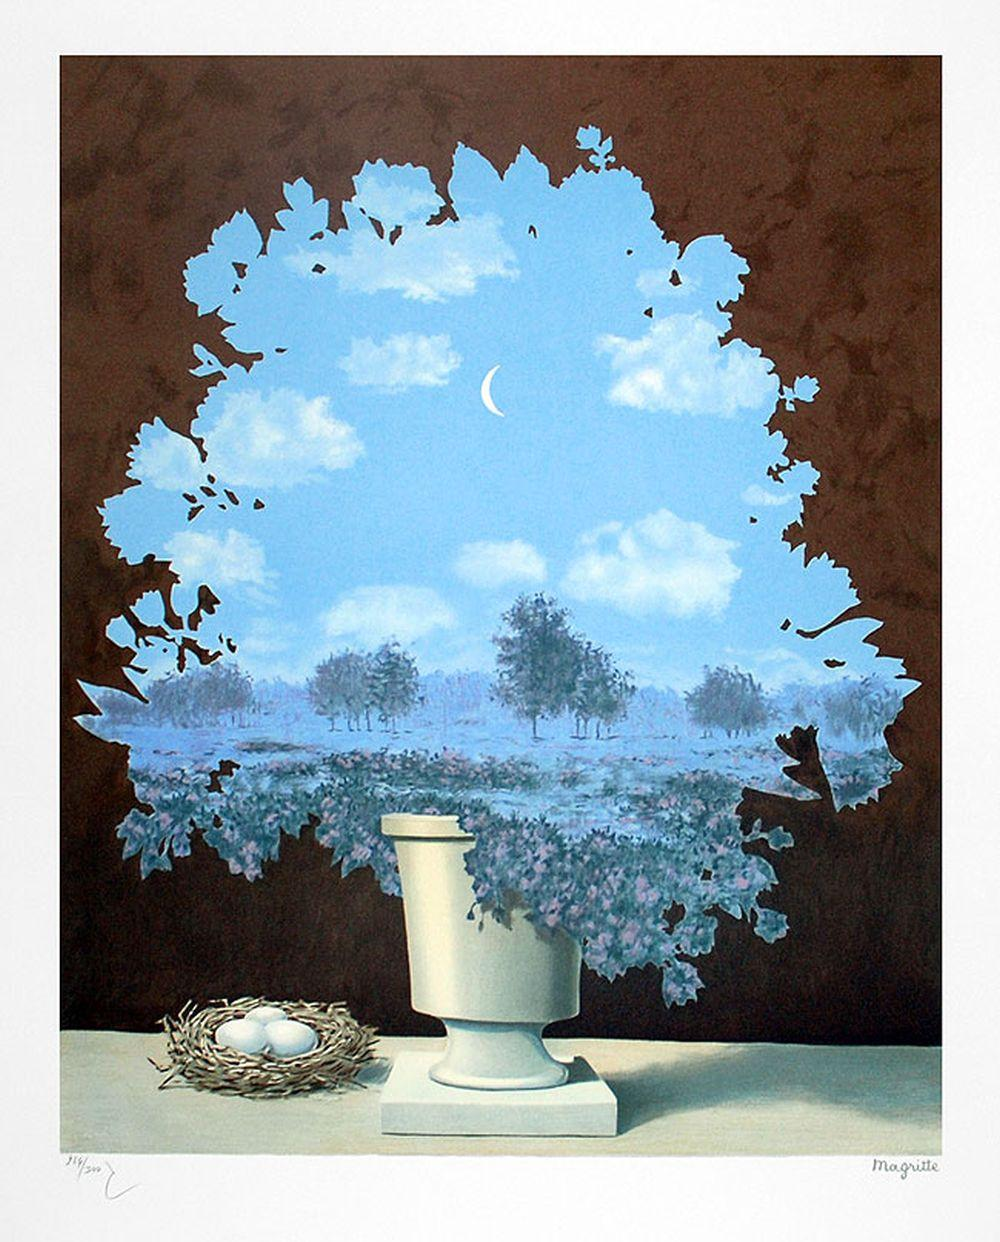 René Magritte - Le Pays des Miracles GM (The Land of Miracles)